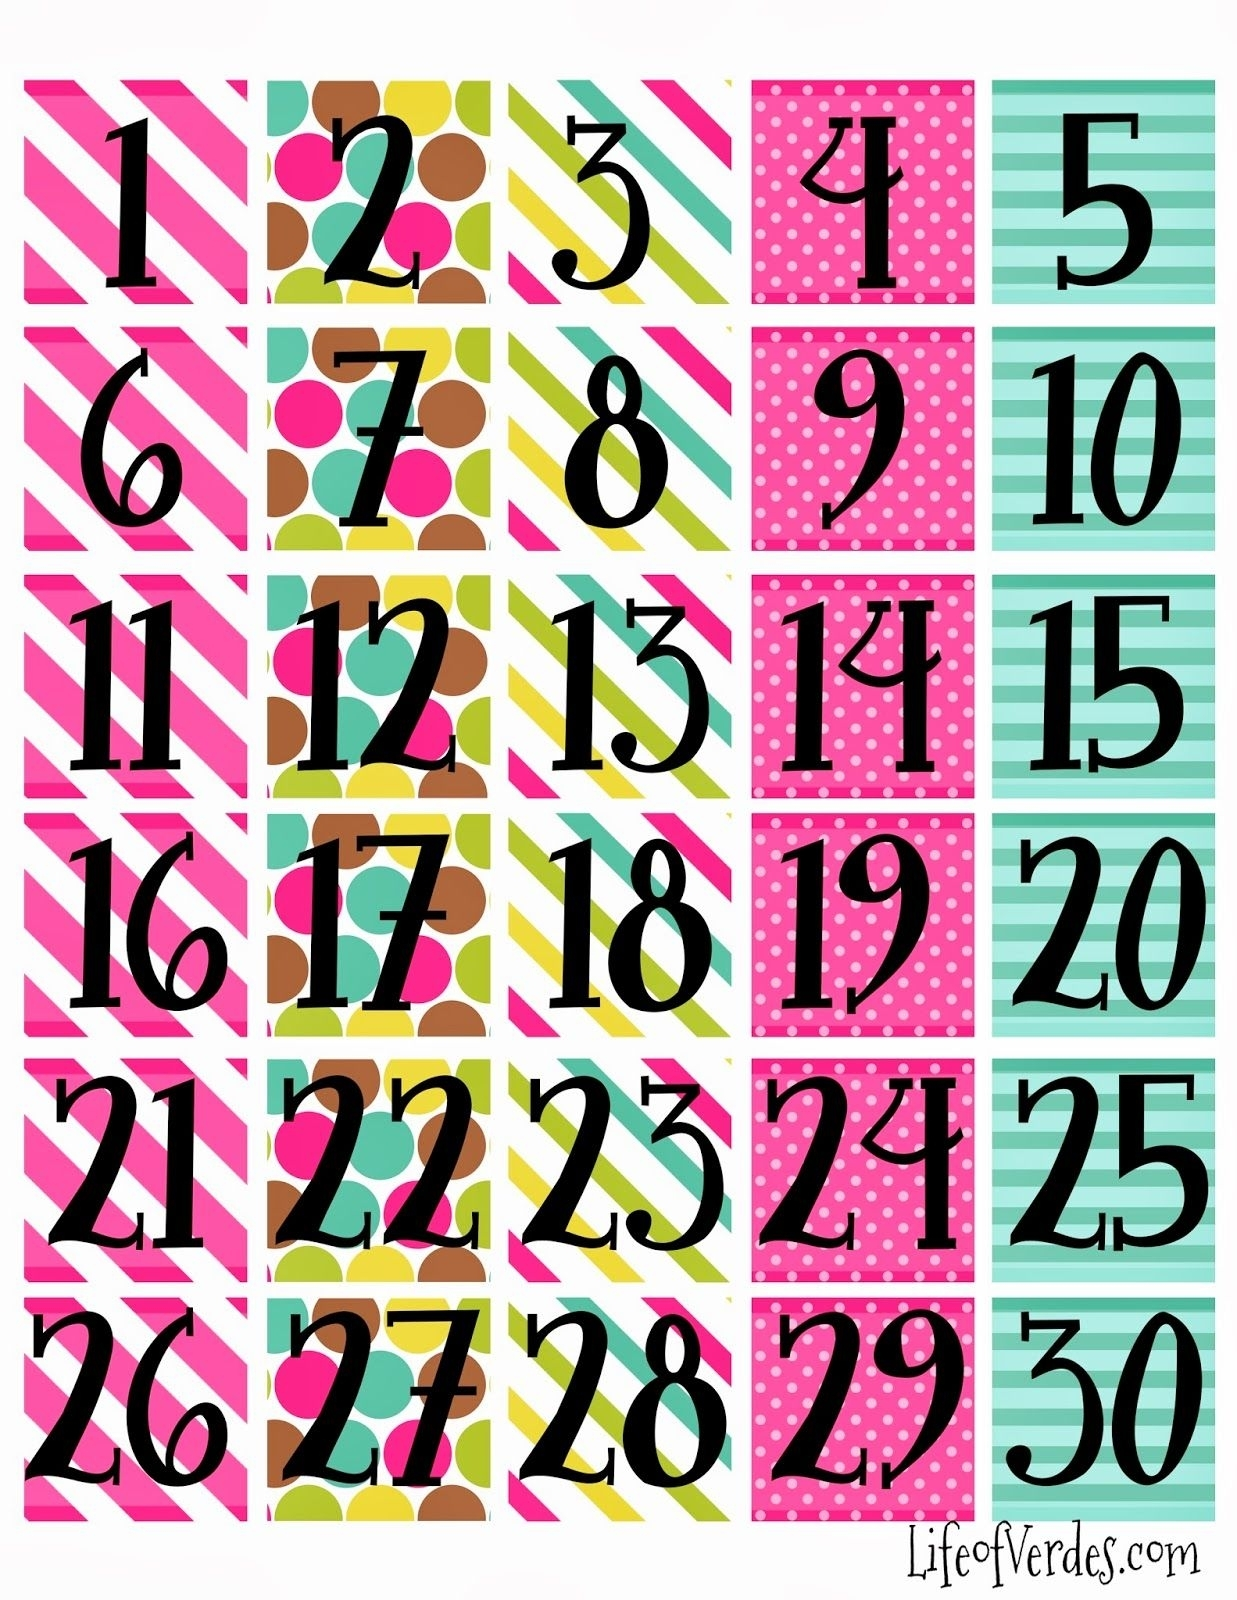 Print Calendar Numbers Free  | Day Care | Free Printable Calendar within Calendar Numbers 1-31 To Print